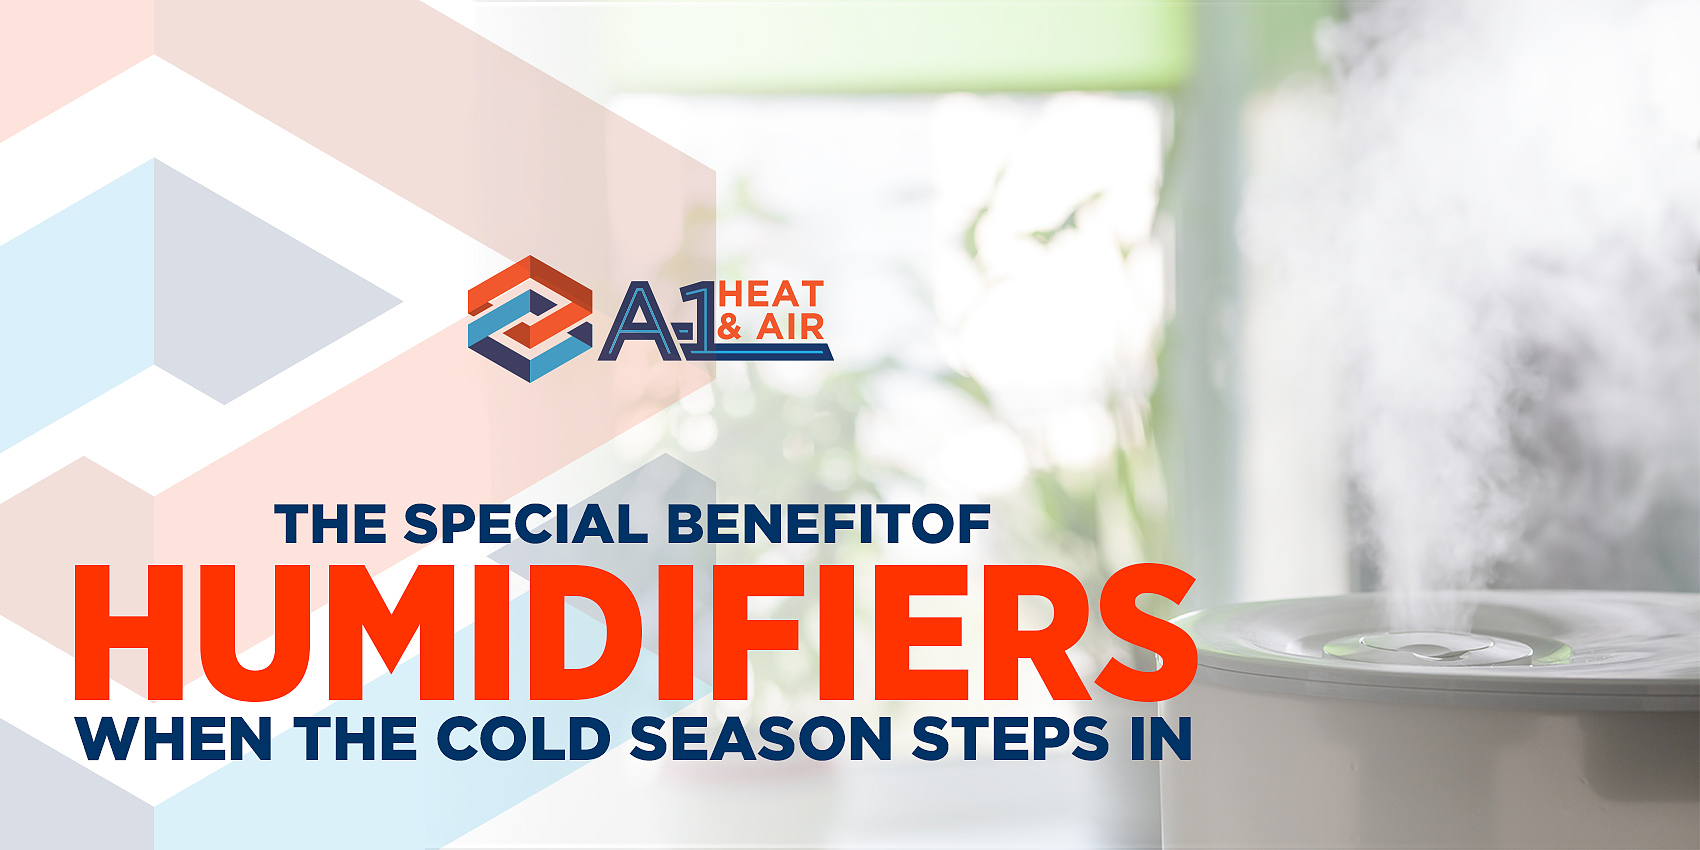 The Special Benefits of Humidifiers When the Cold Season Steps In